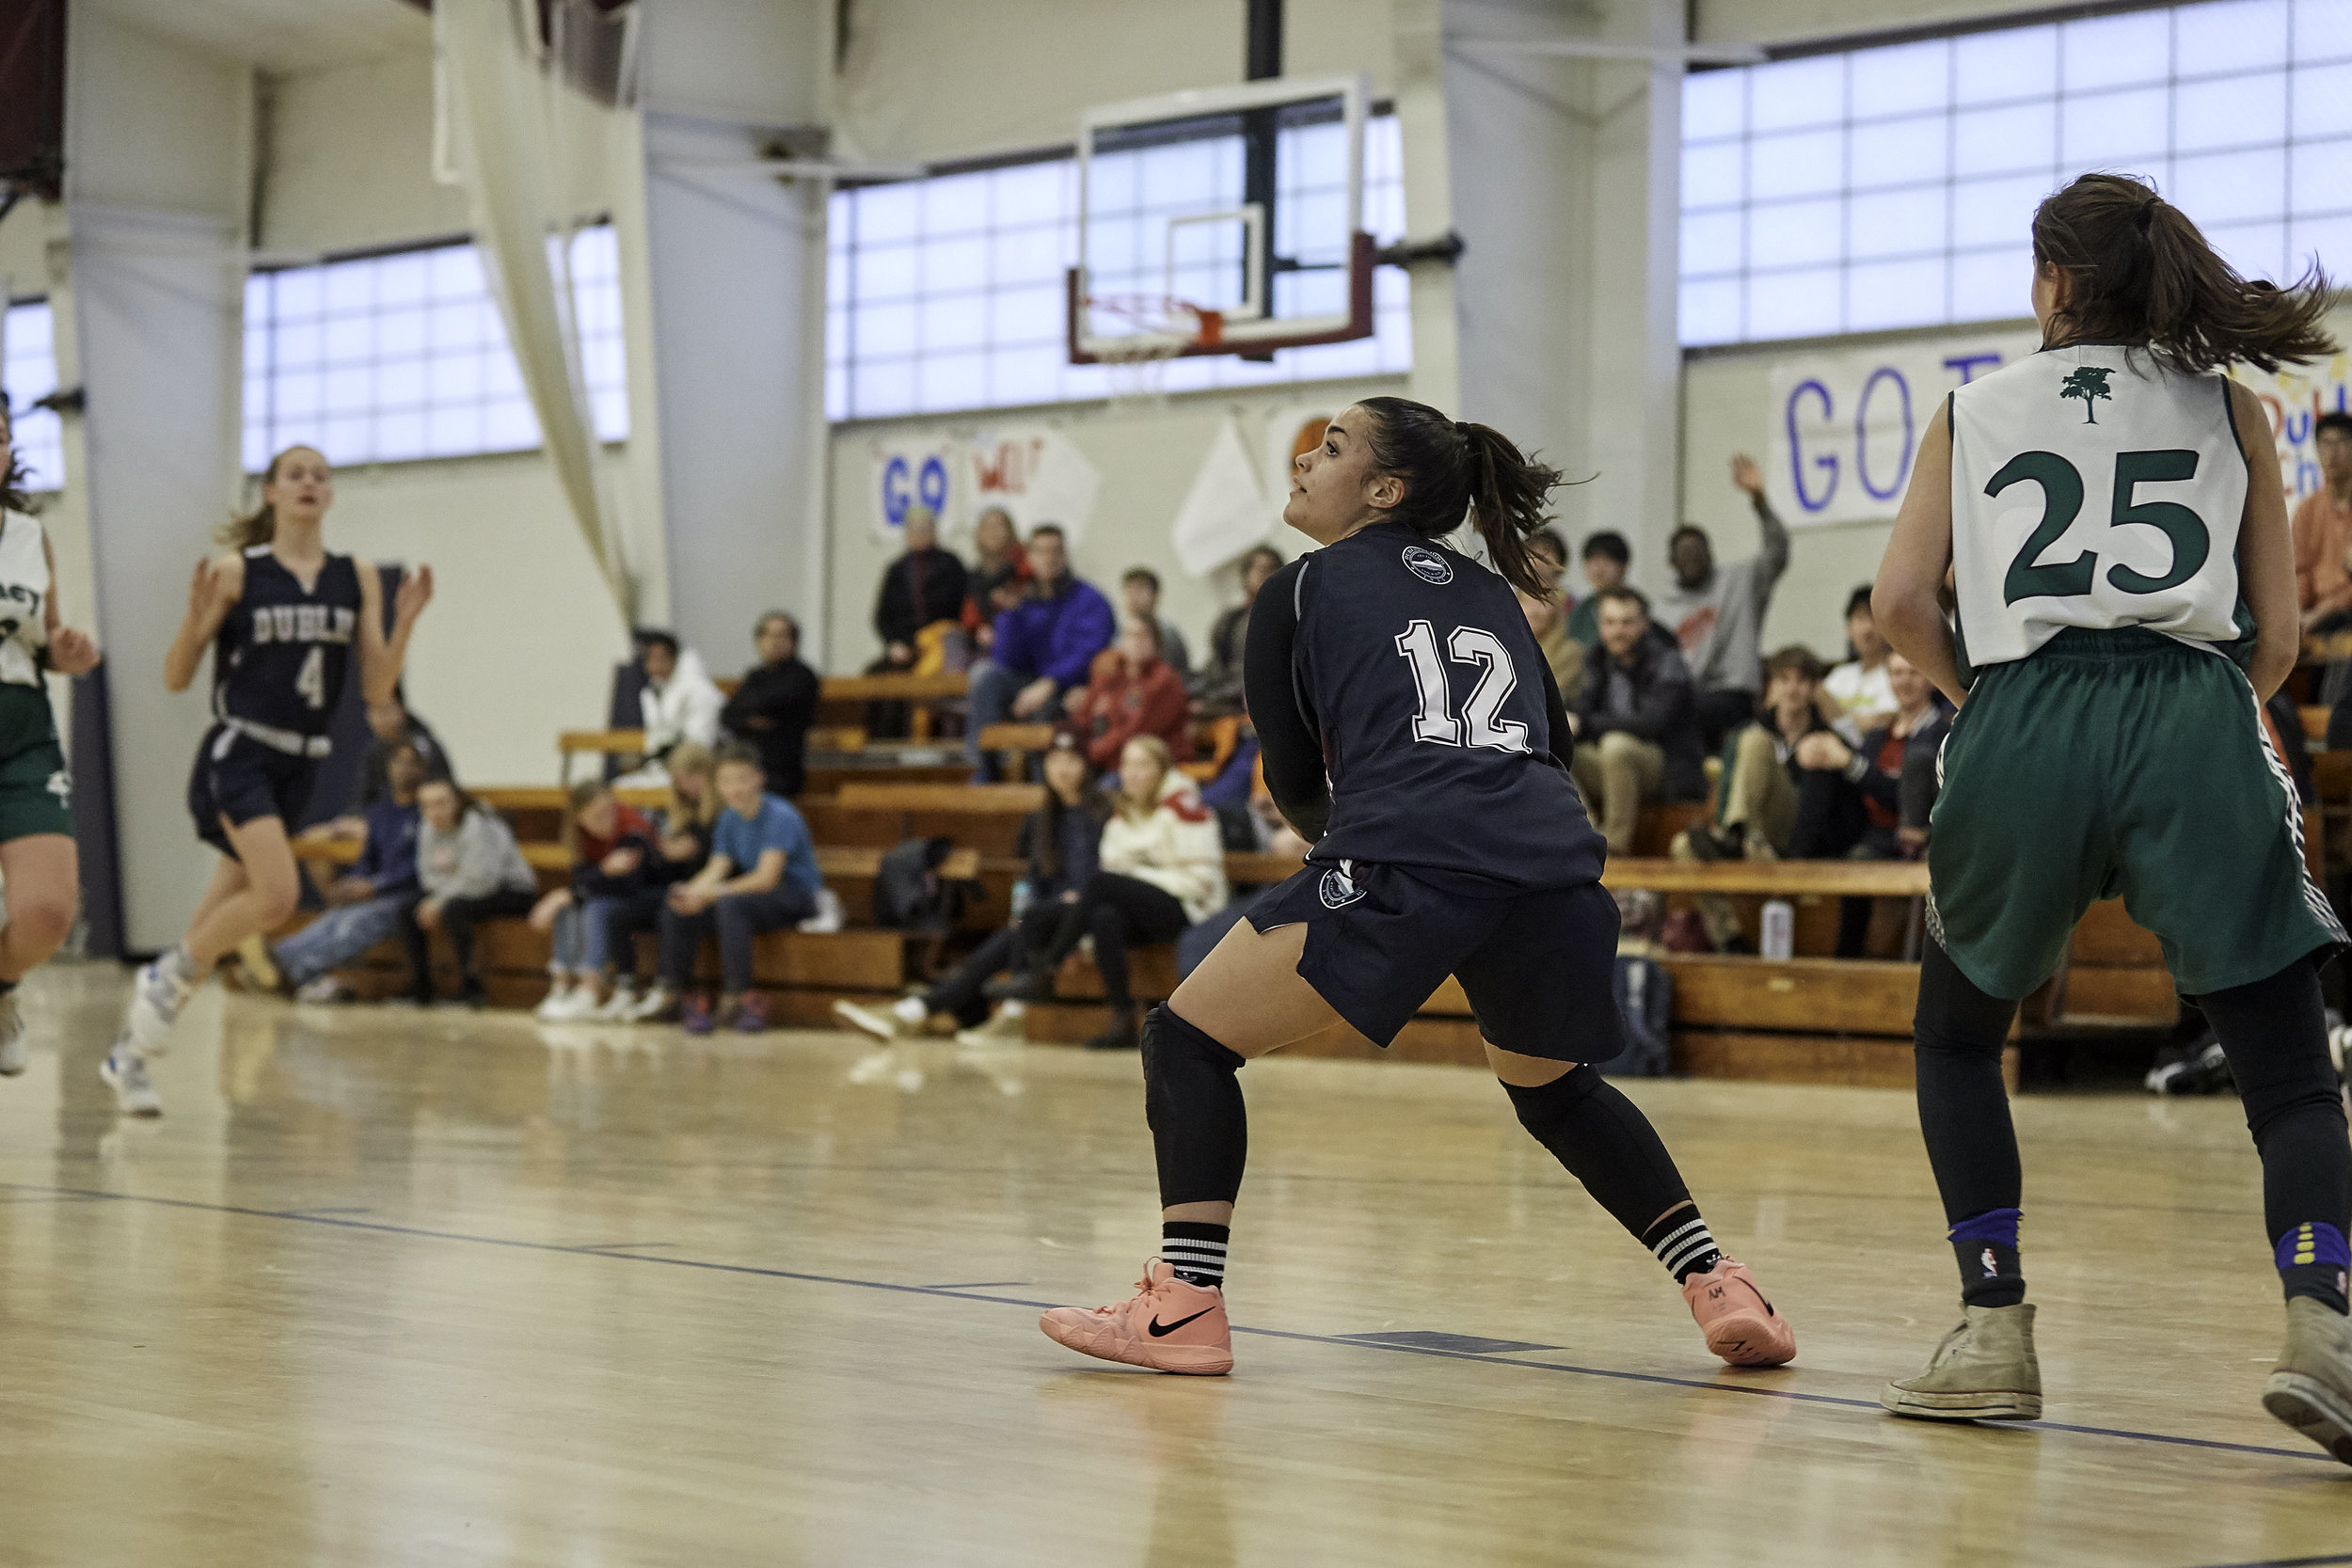 Basketball vs Putney School, February 9, 2019 - 167225.jpg